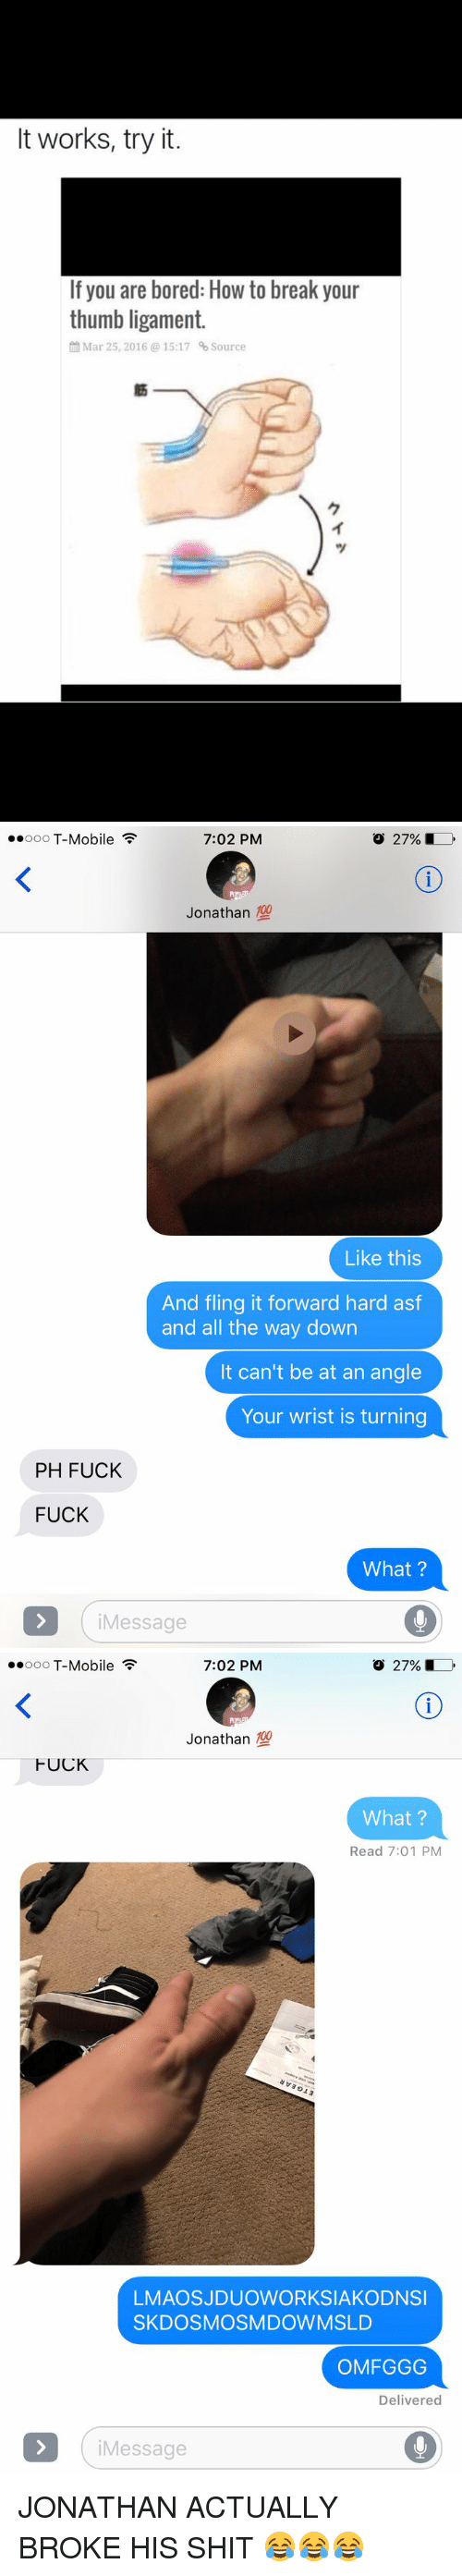 How To Break Your Thumb Ligament